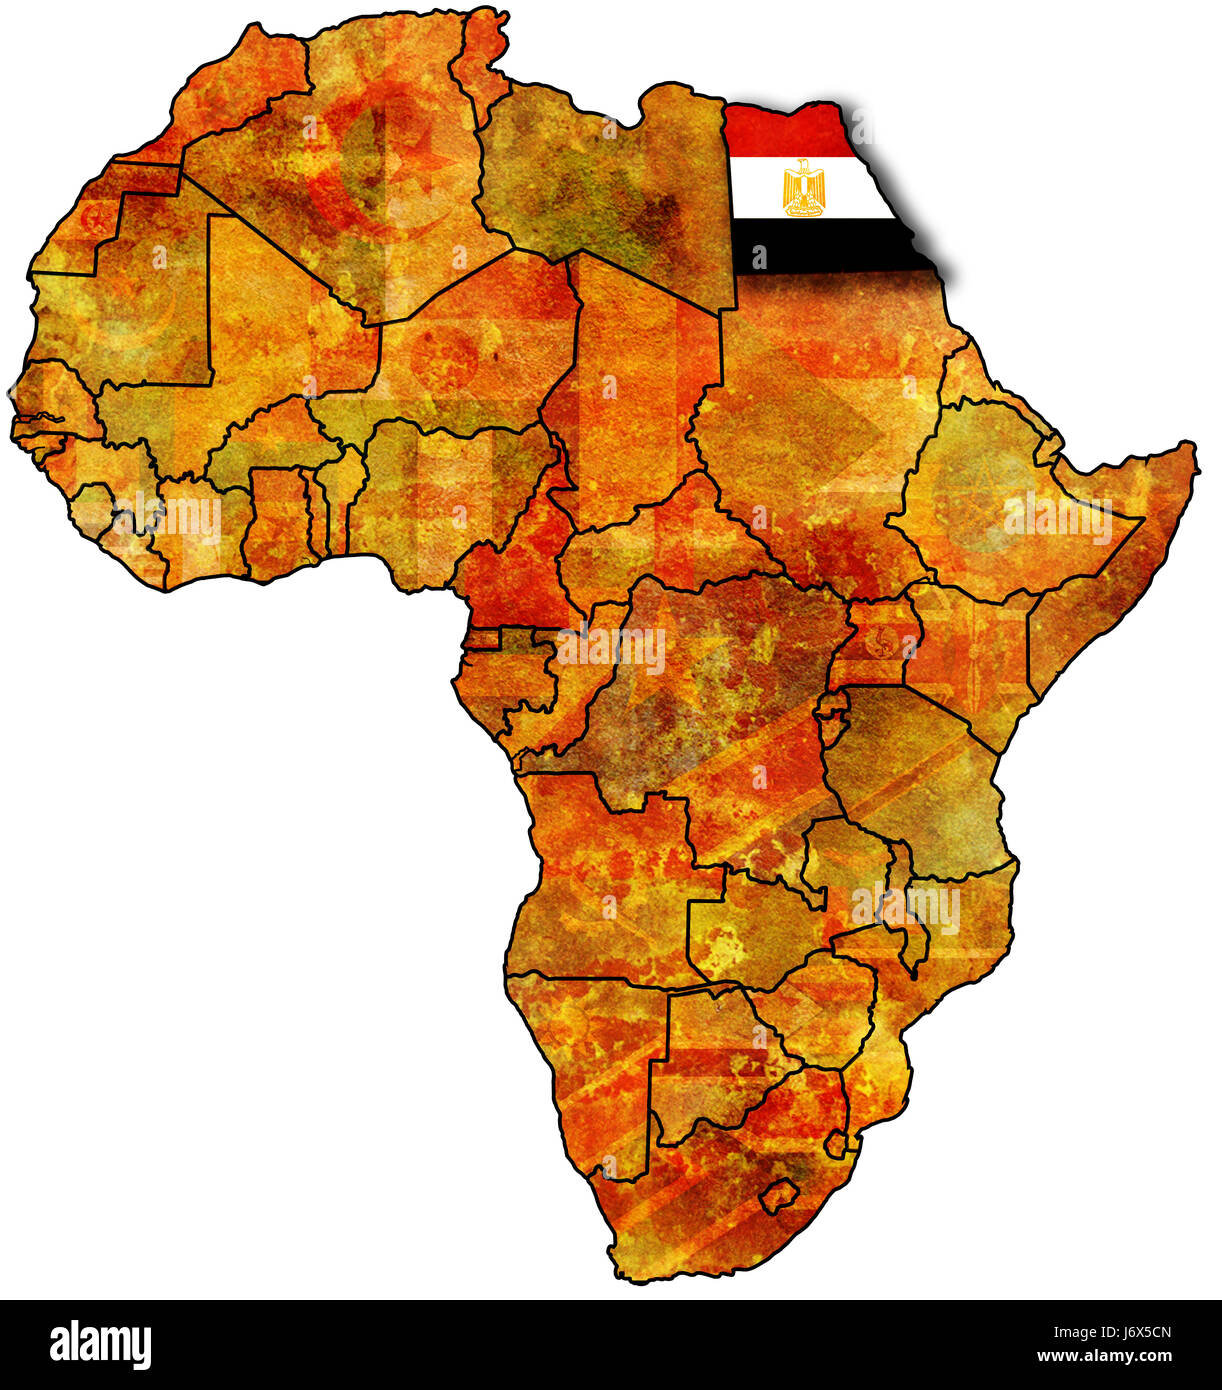 Egypt On Africa Map Stock Photo Royalty Free Image Alamy - Map of egypt and africa